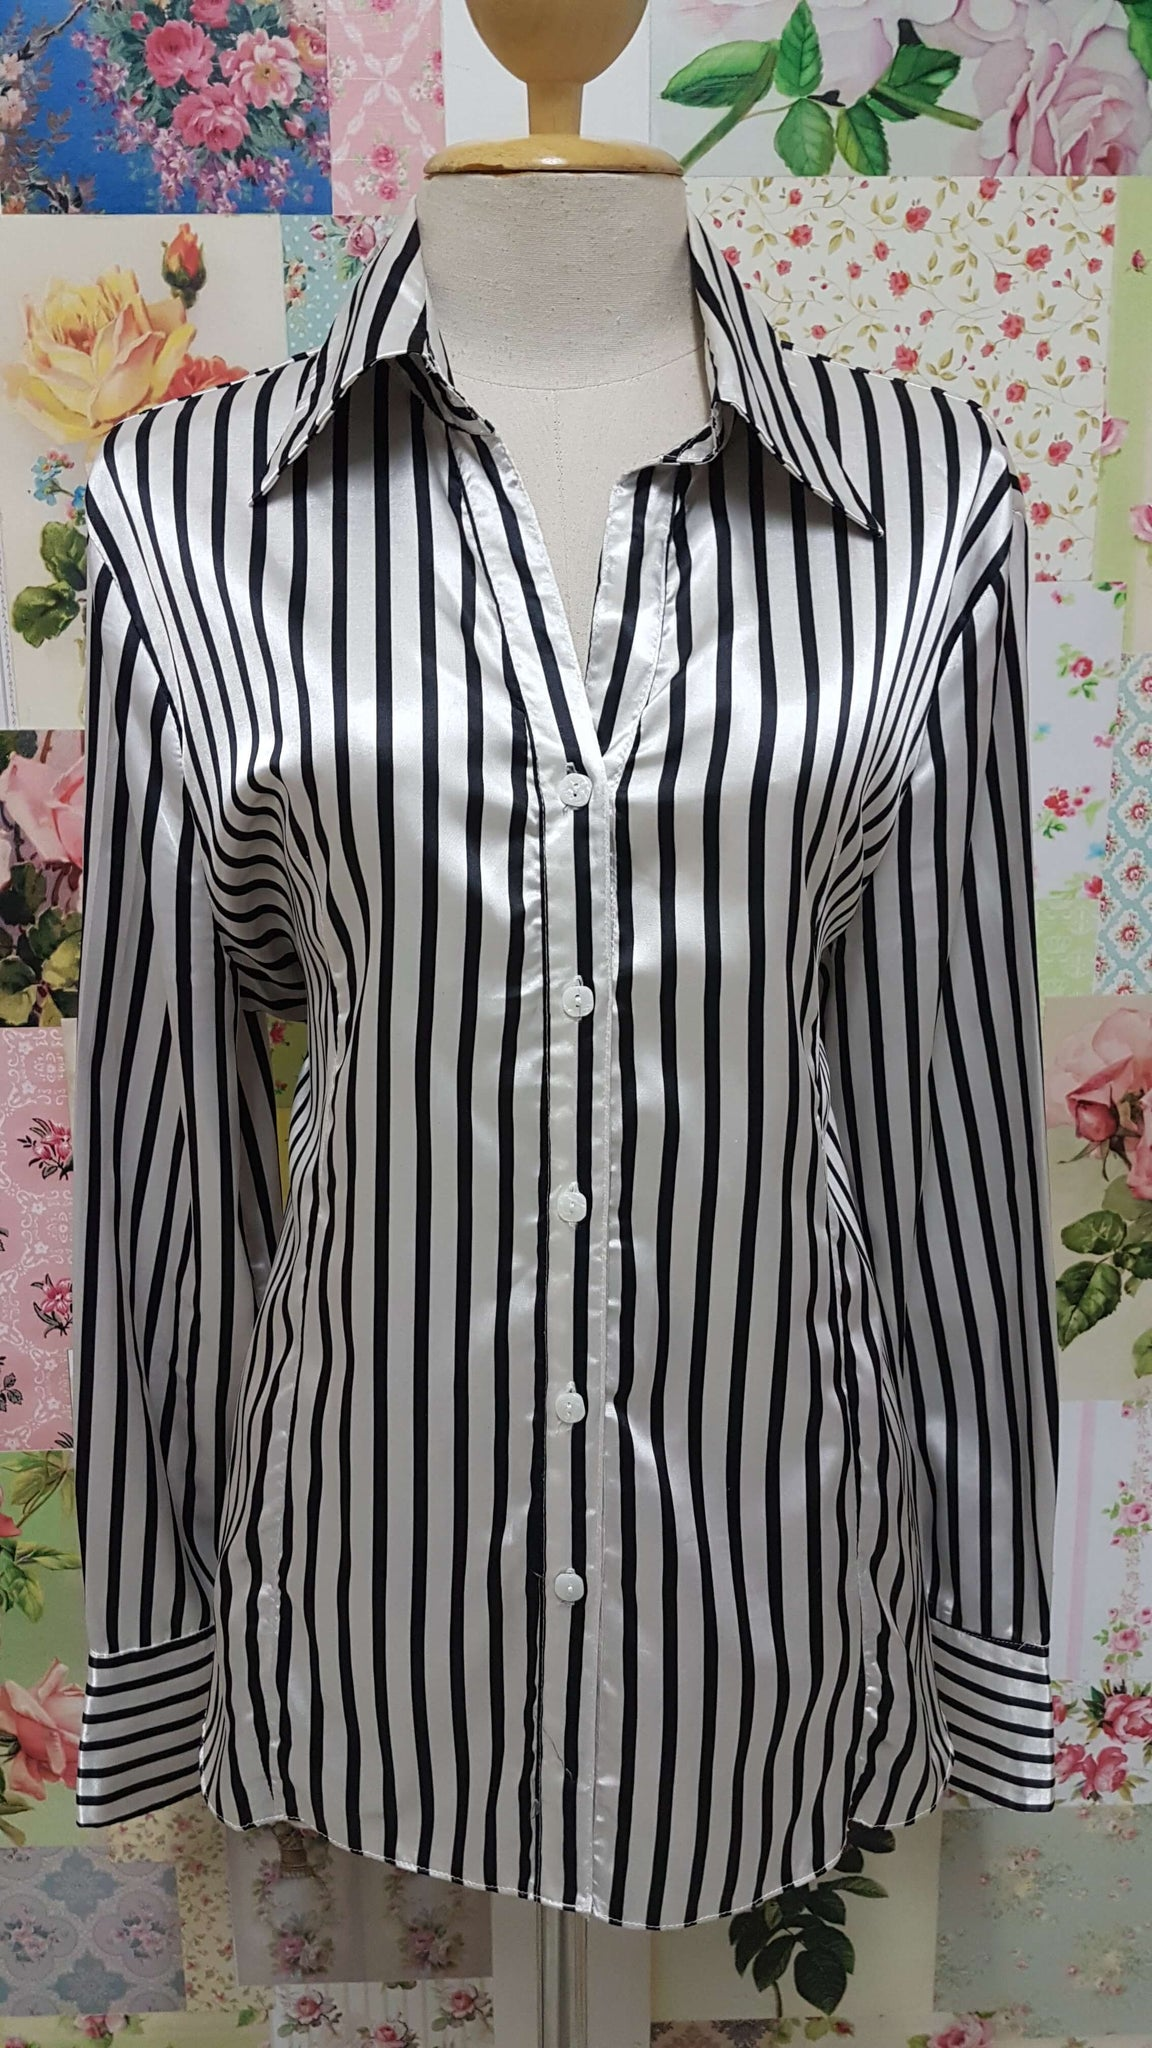 Black & White Striped Blouse BT095